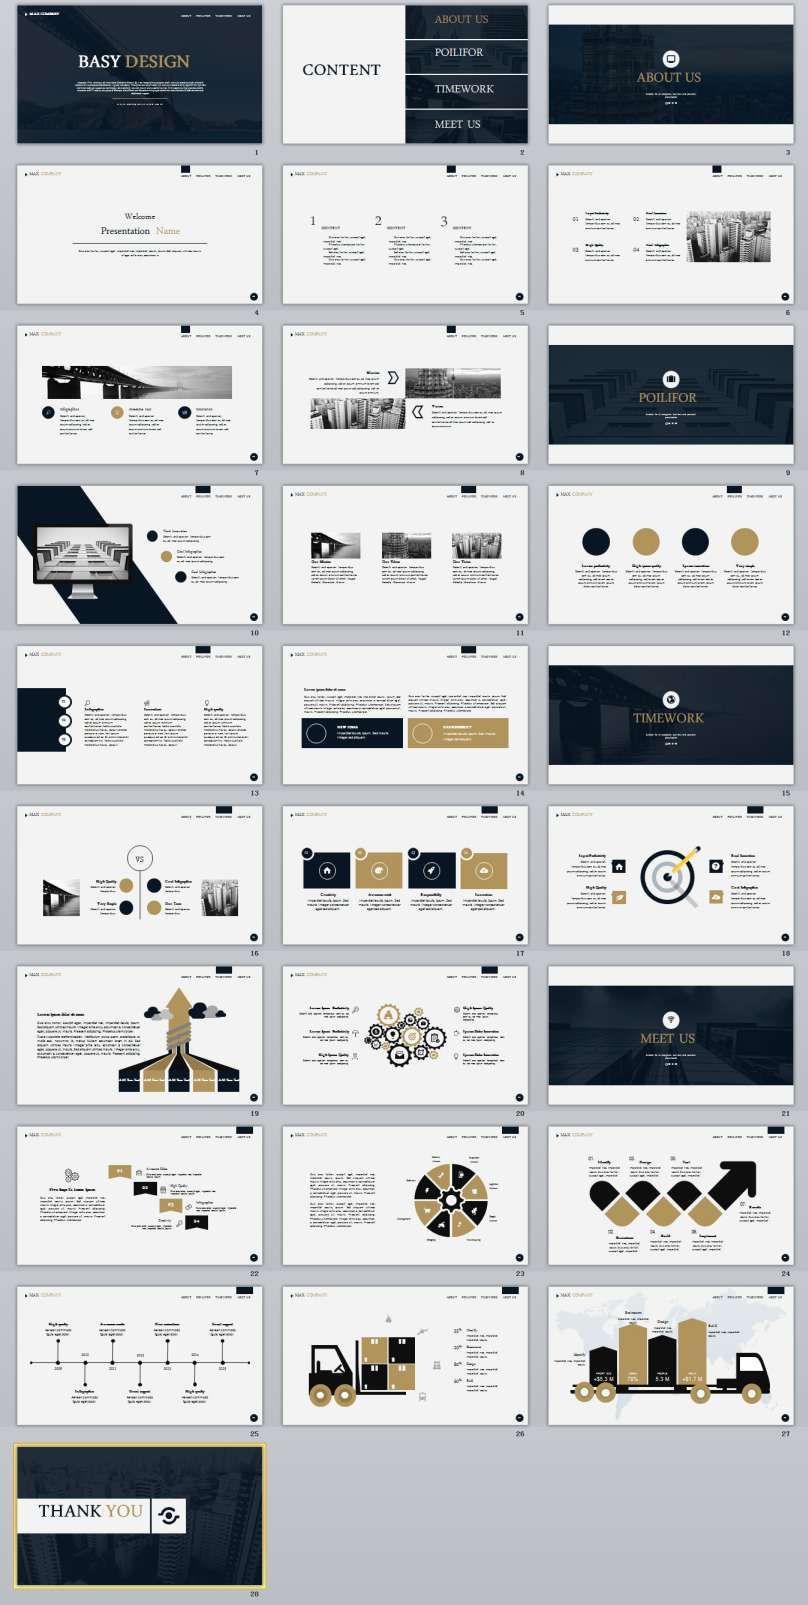 28 2018 best business powerpoint templates ppt design pinterest 28 2018 best business powerpoint templates the highest quality powerpoint templates and keynote templates flashek Images